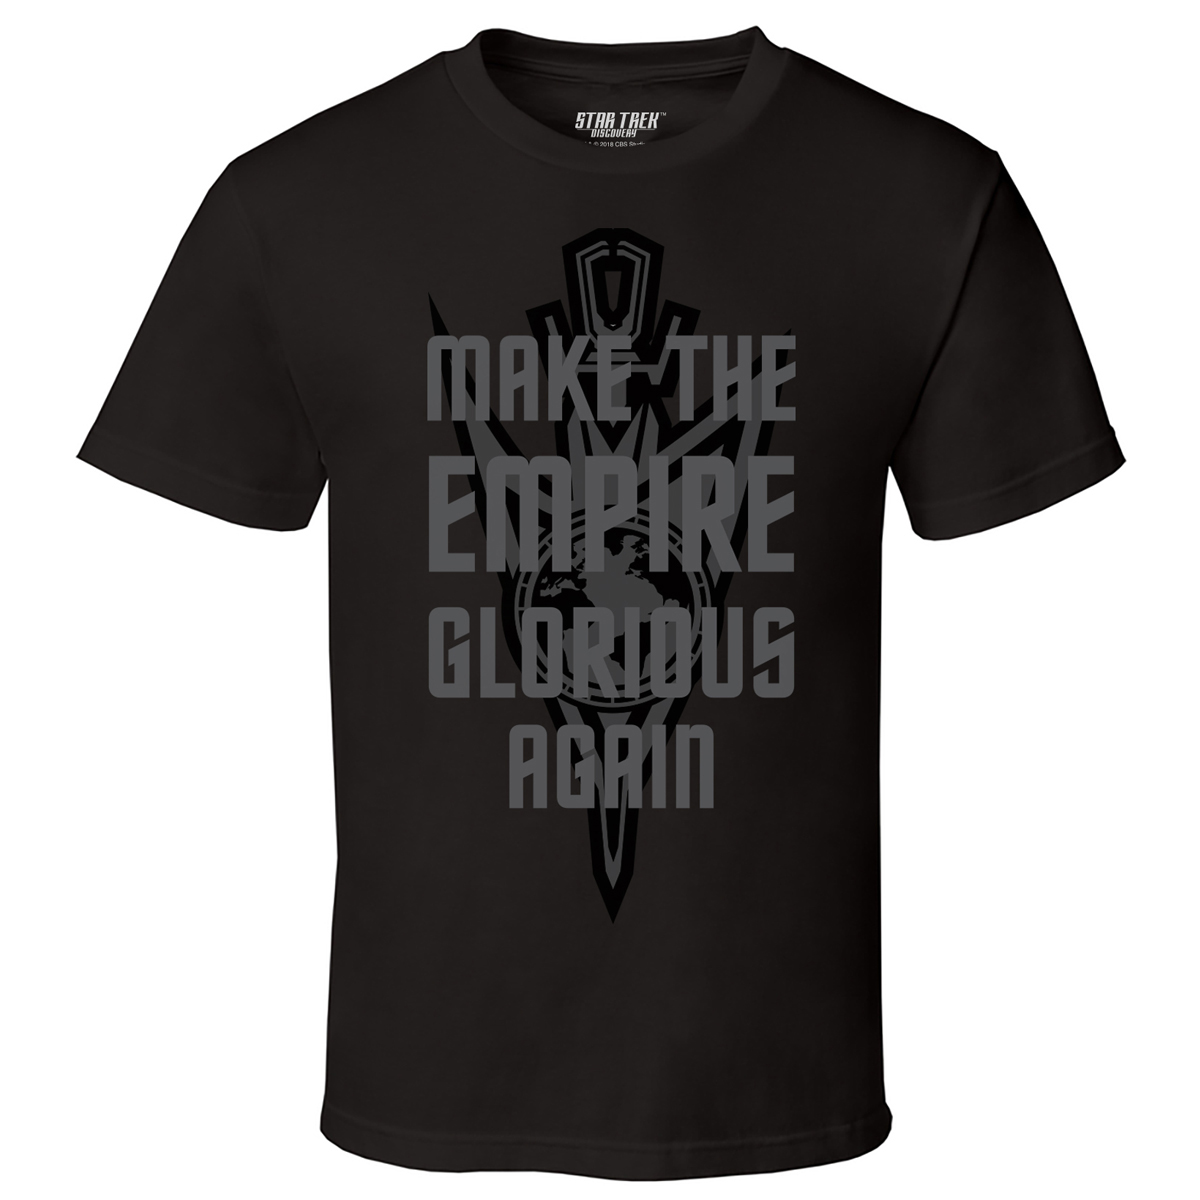 Star Trek Discovery Make the Empire Glorious Again T-Shirt